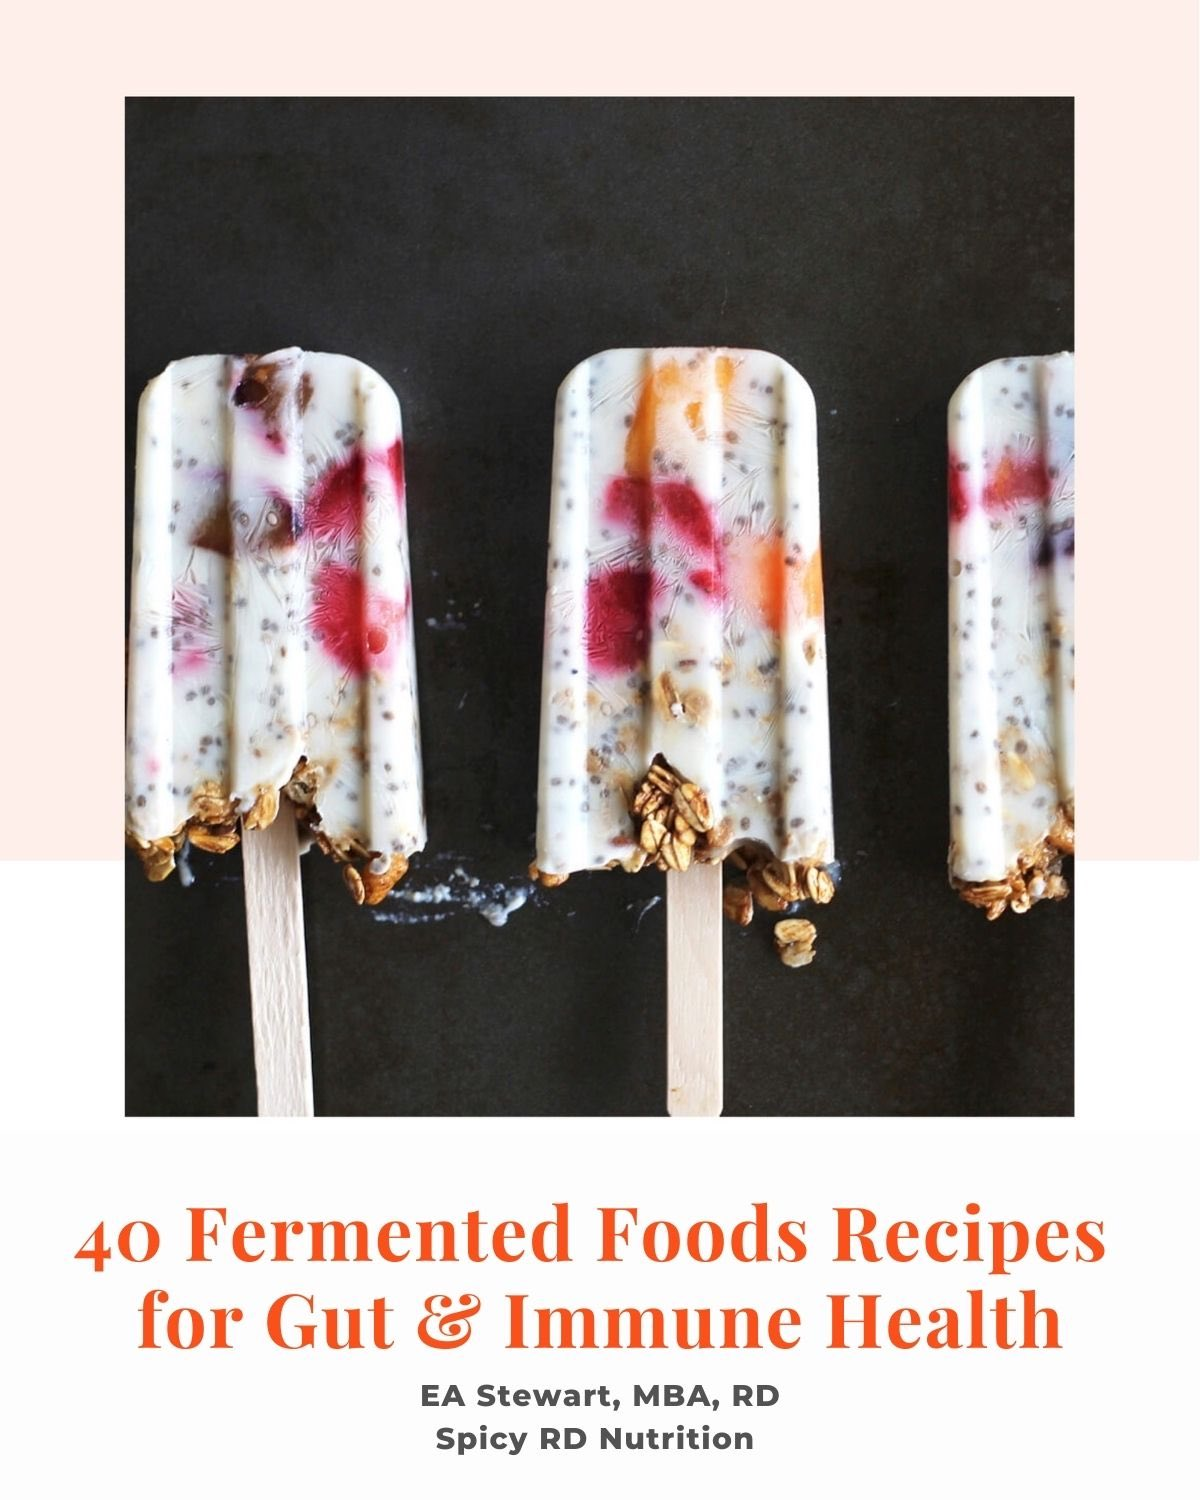 Cookbook Cover with photo of yogurt popsicles and text: 40 Fermented Foods Recipes for Gut and Immune Health.